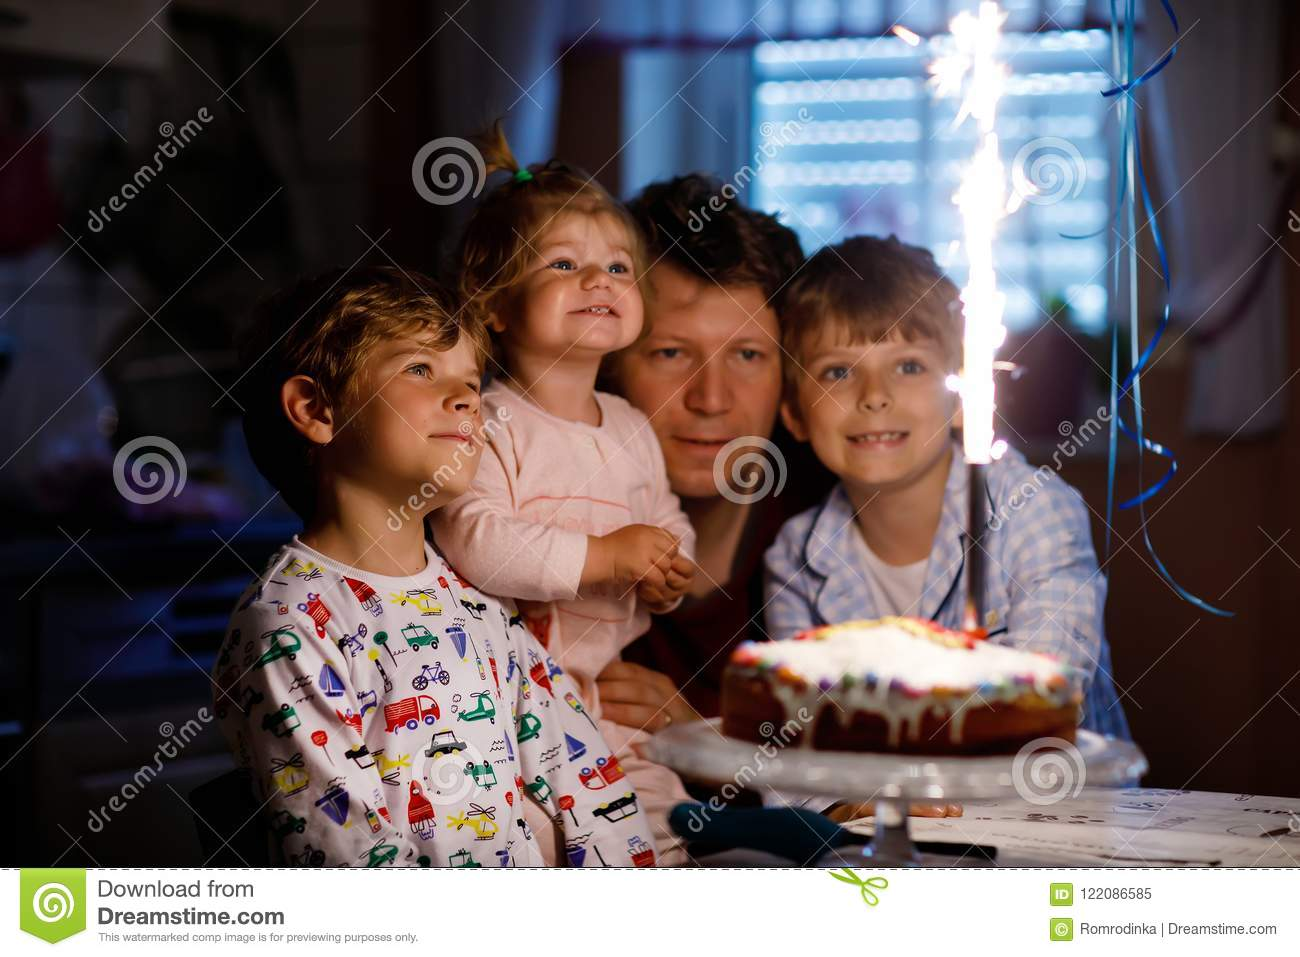 Little kid boy and family, father, brother and baby sister celebrating birthday